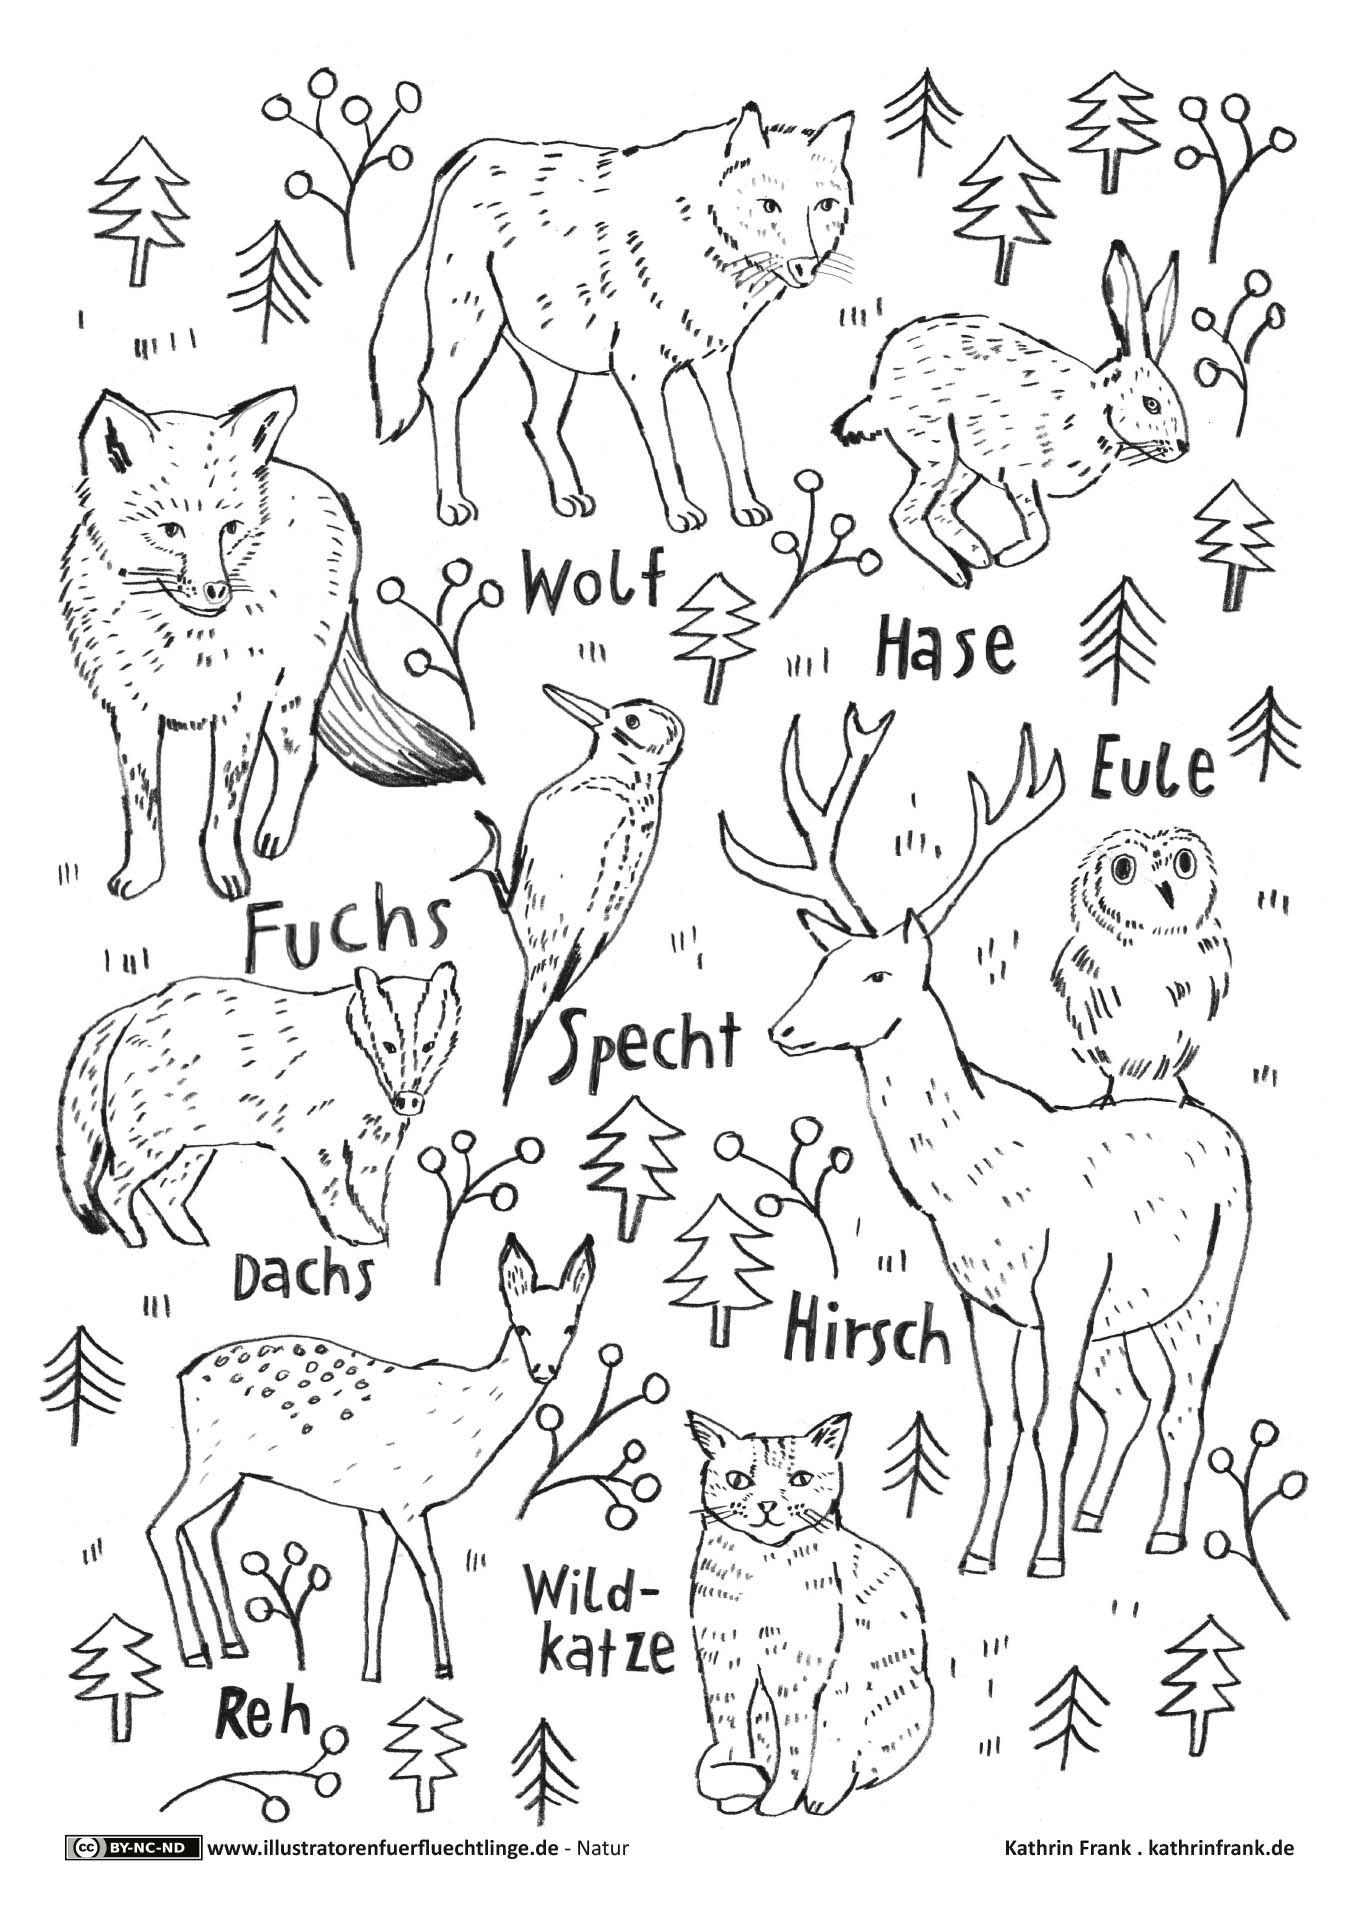 Ausmalbild Oder Abpausen Fur Kinder Natur Waldtiere Wood Animals Coloring Page For Ki Kindergarten Coloring Pages Birthday Coloring Pages Coloring Pages